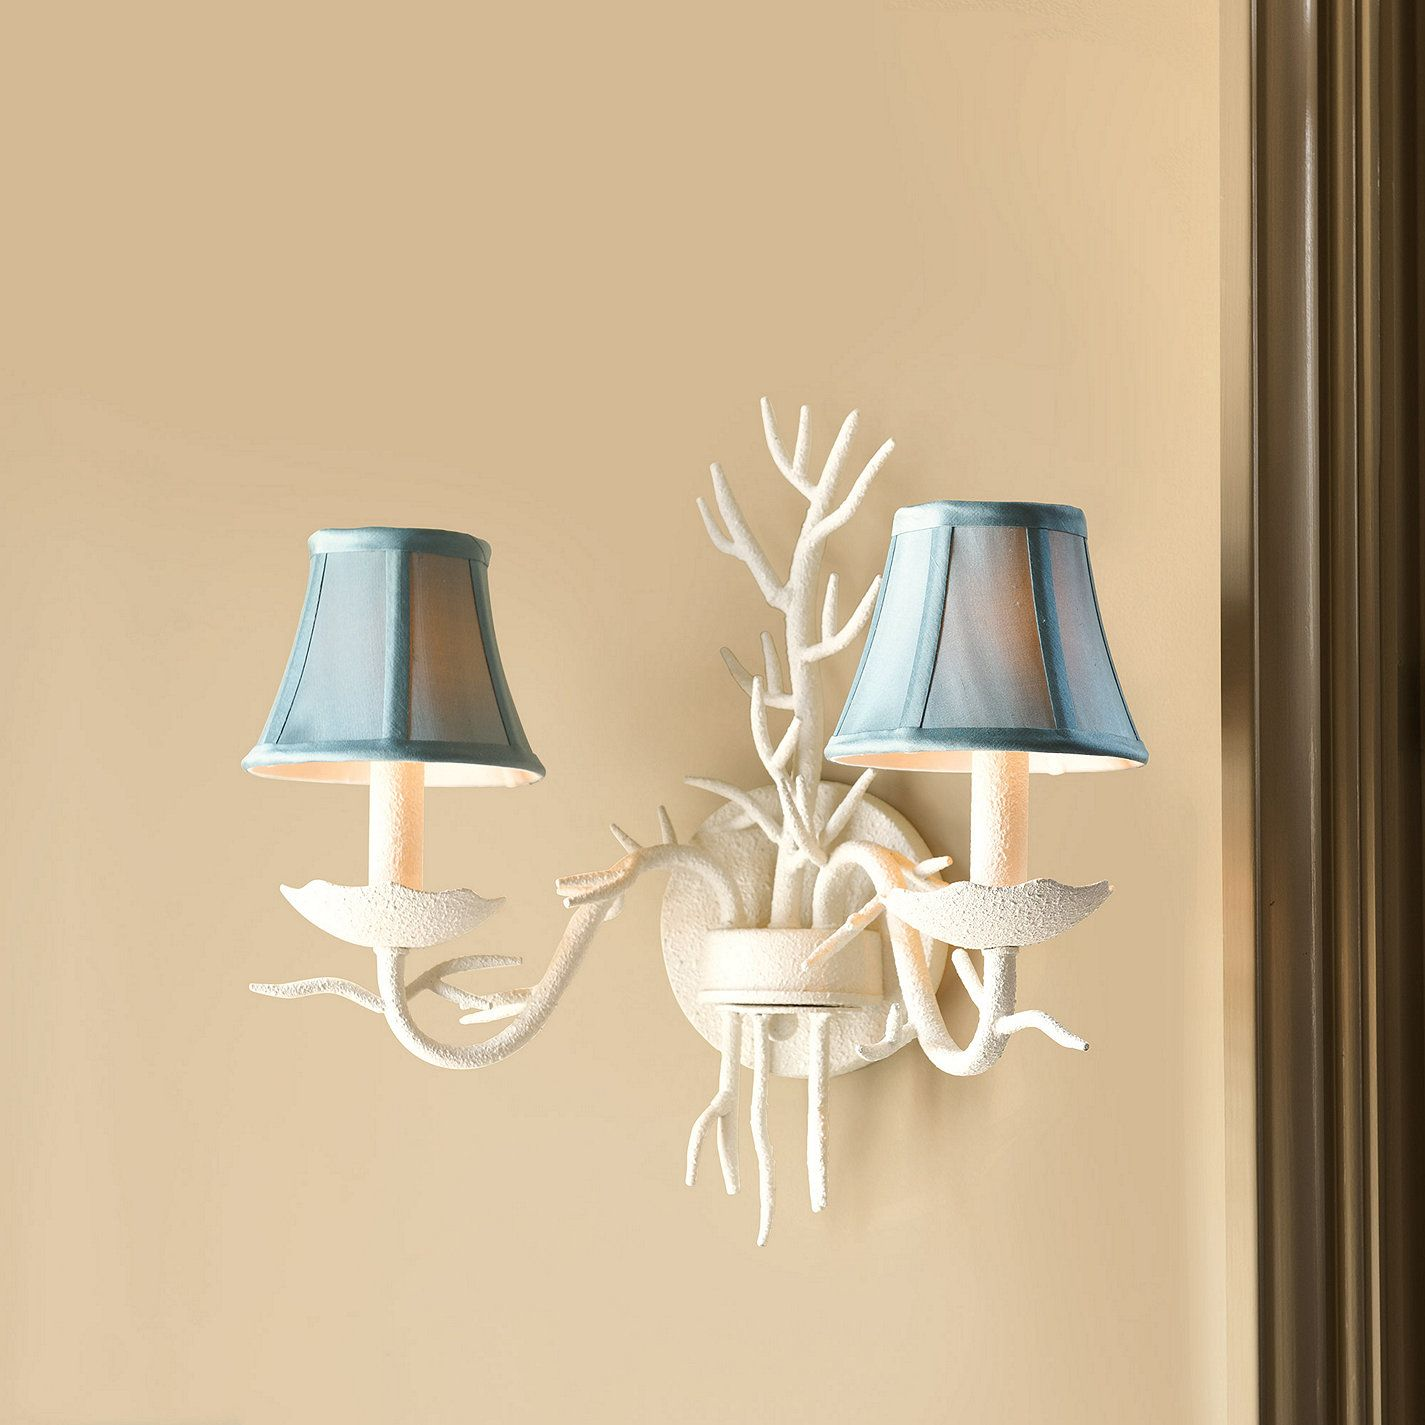 Coral sconce ballard designs lighting pinterest sunroom coral sconce ballard designs arubaitofo Image collections